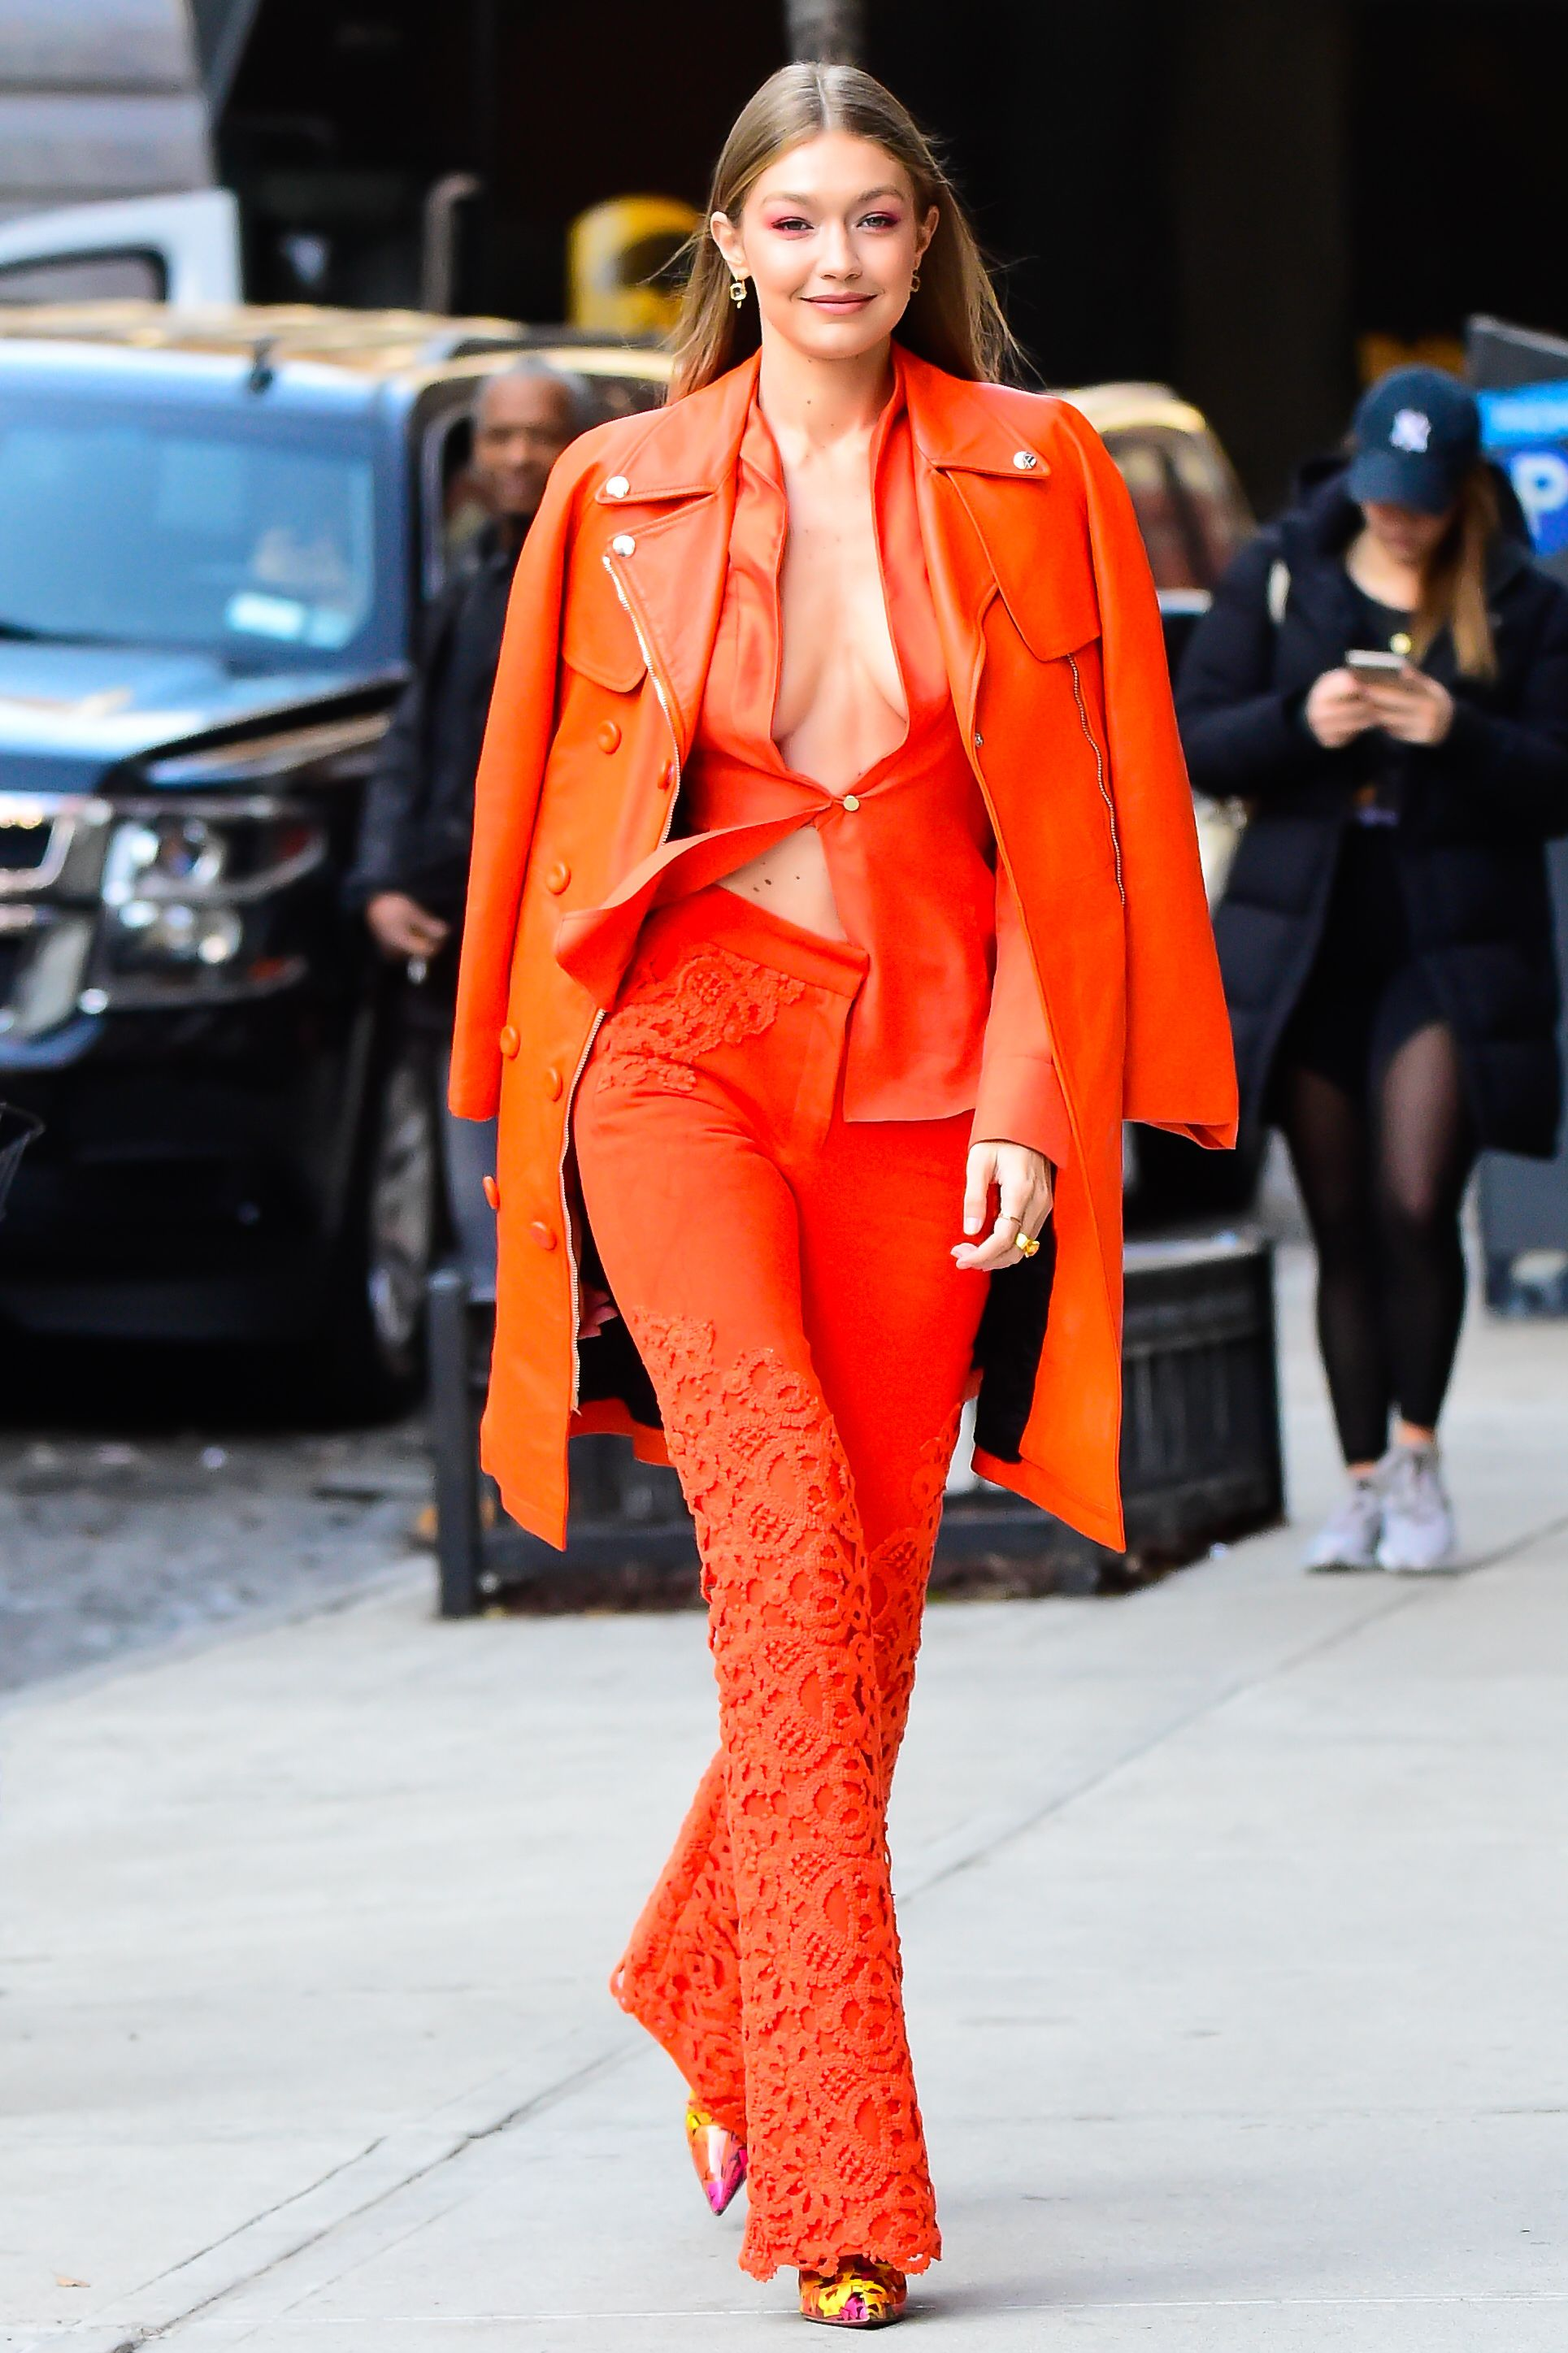 December 11, 2018 Braving the cold, Gigi wore a monochromatic orange ensemble while heading out to visit the IMG Models offices in New York City. Despite the freezing temperatures, the star wore a shirt held together with only one button, which flapped in the wind.